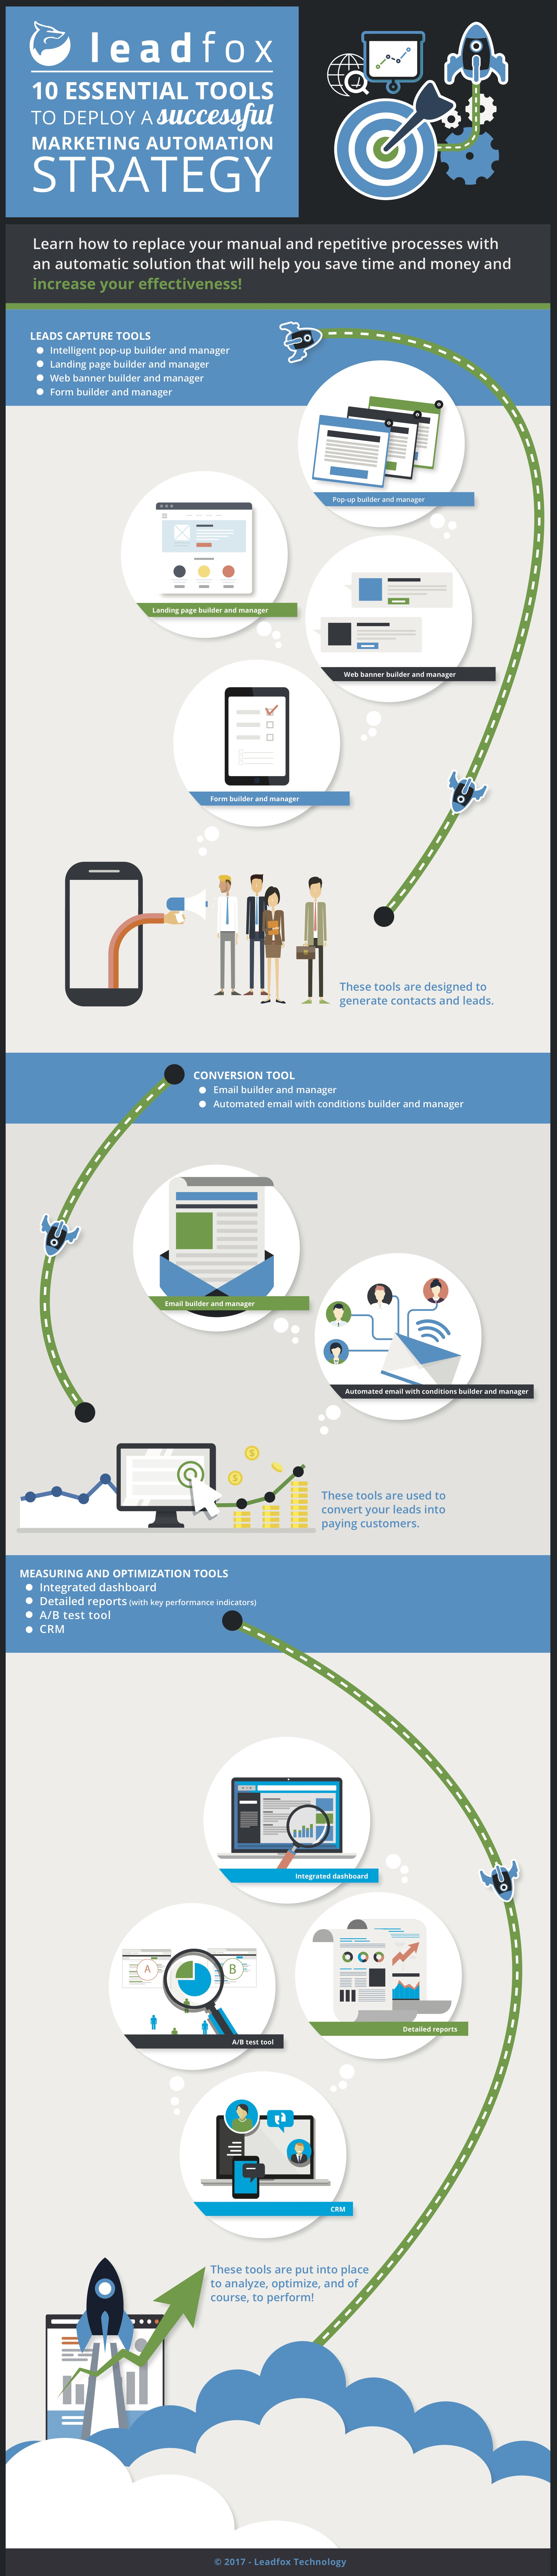 outils marketing automation